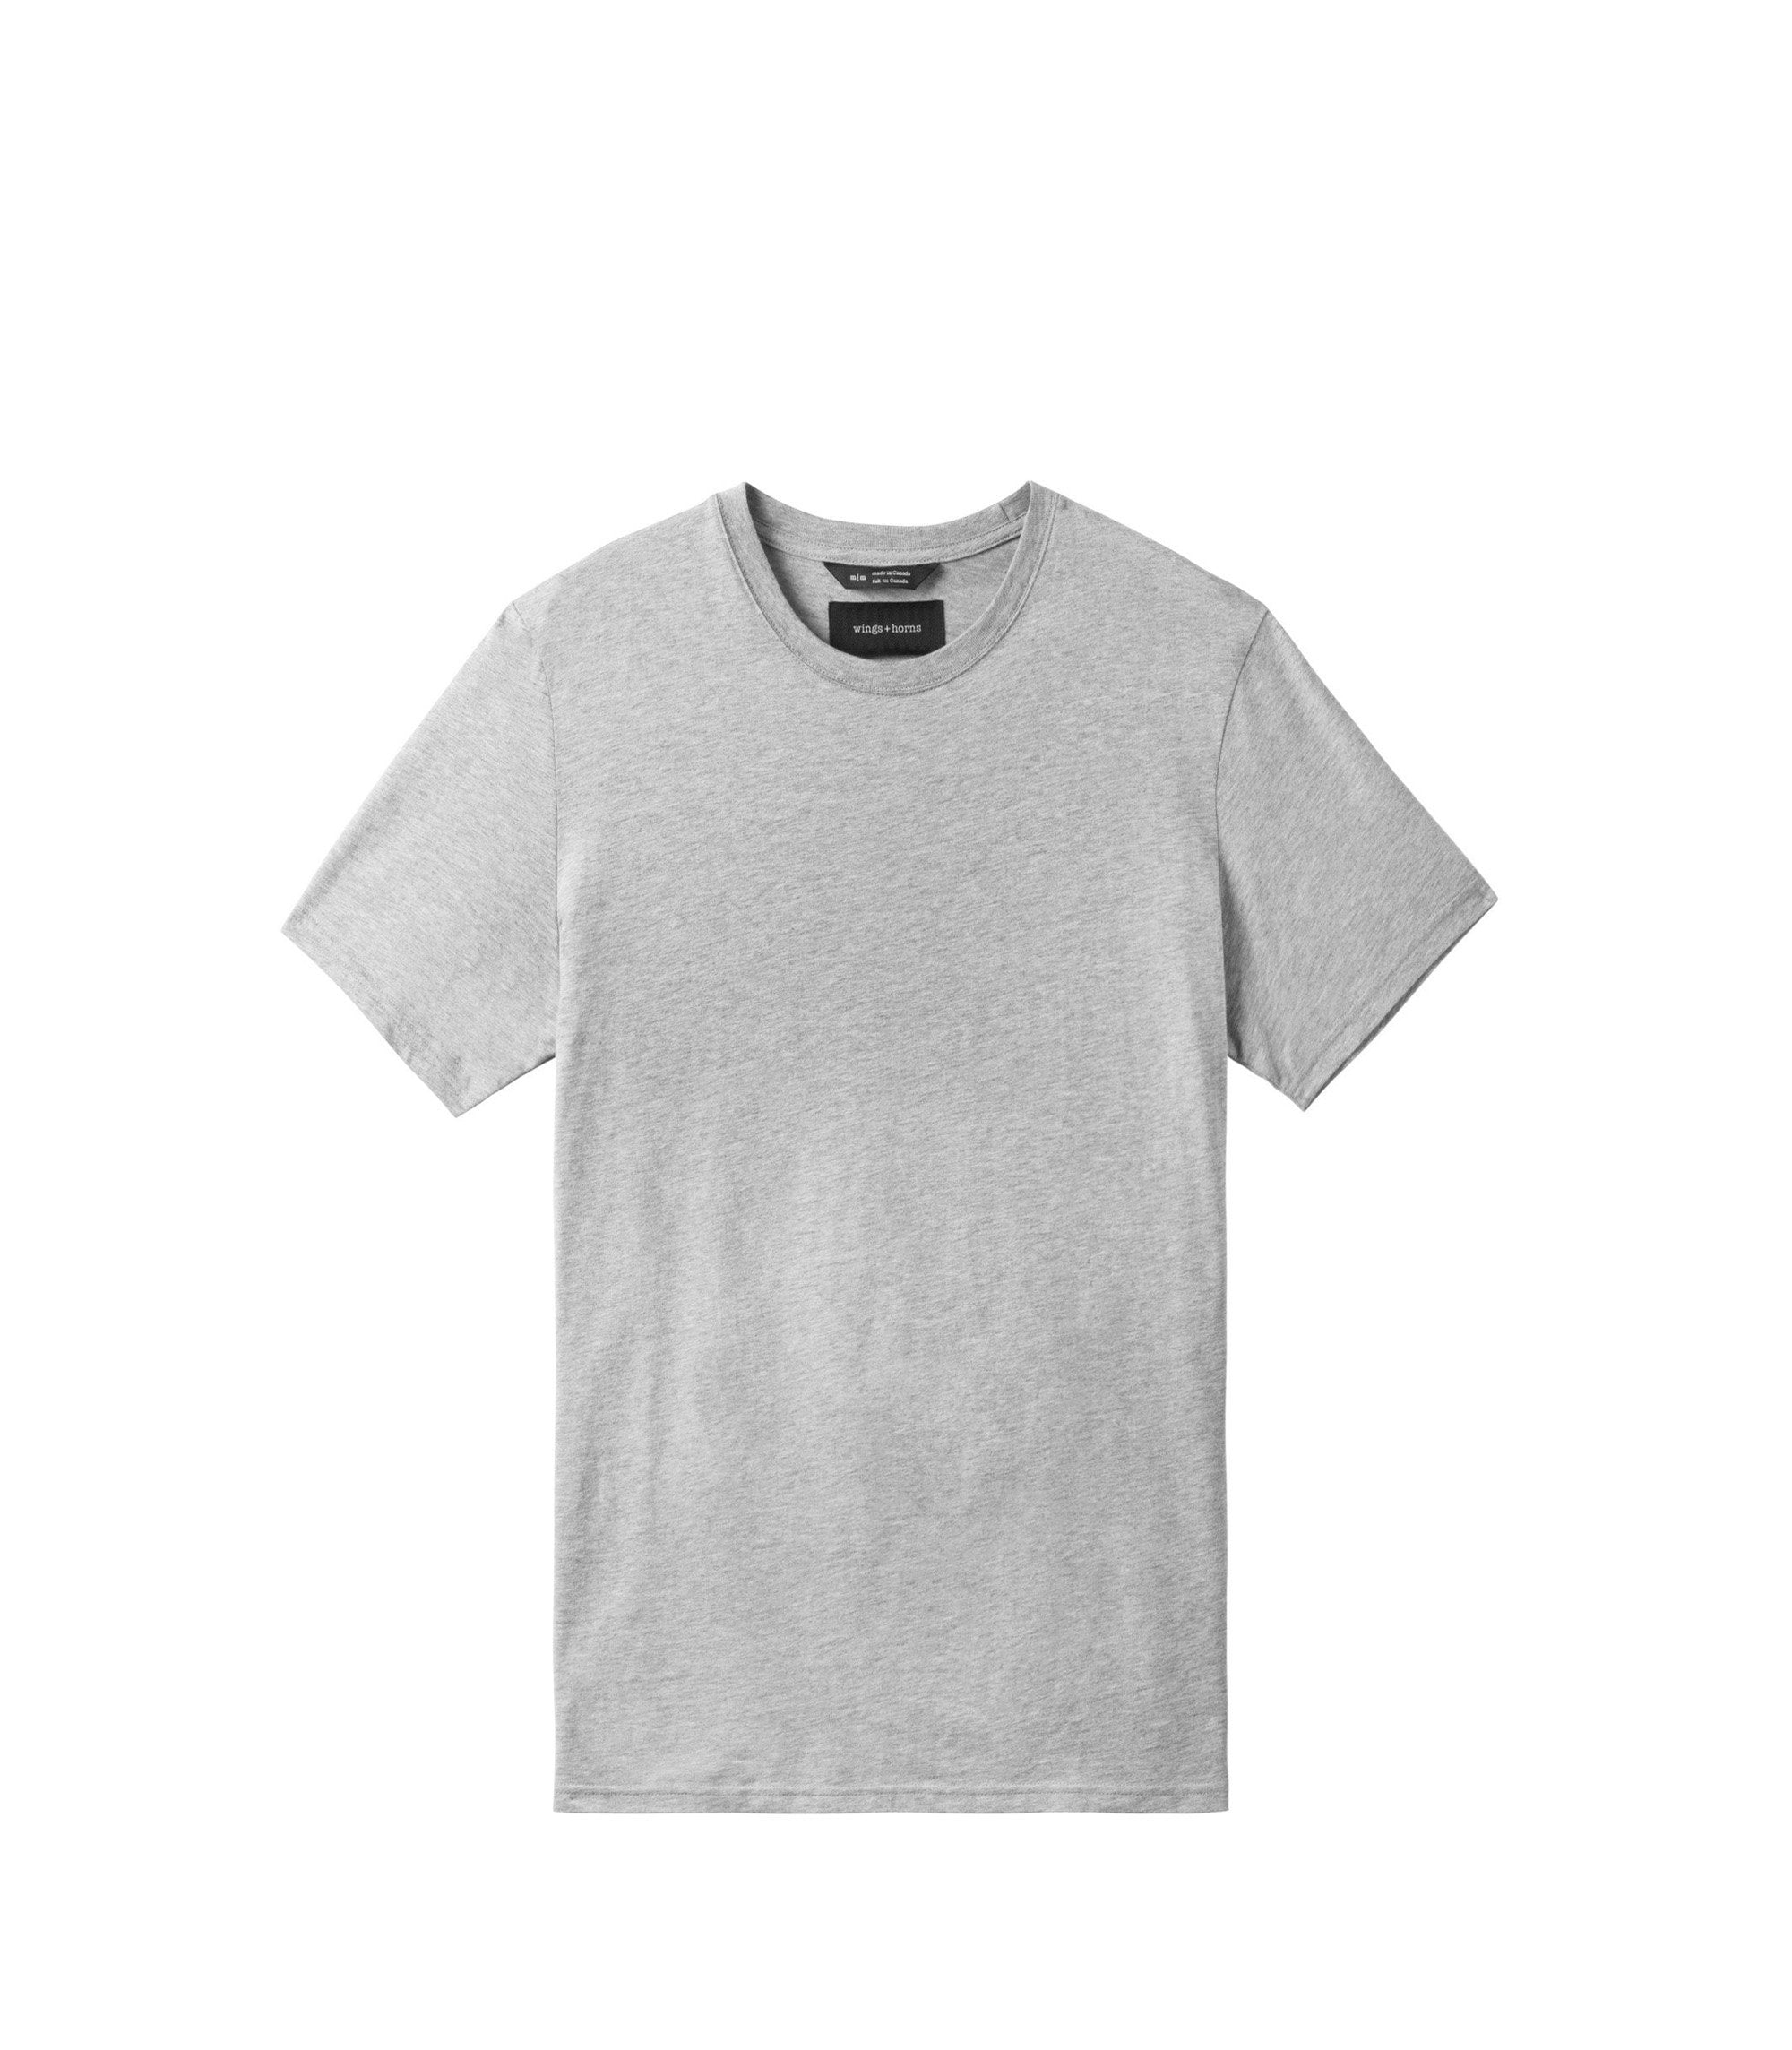 WINGS + HORNS M'S T-SHIRTS Gry L ORIGINAL TEE